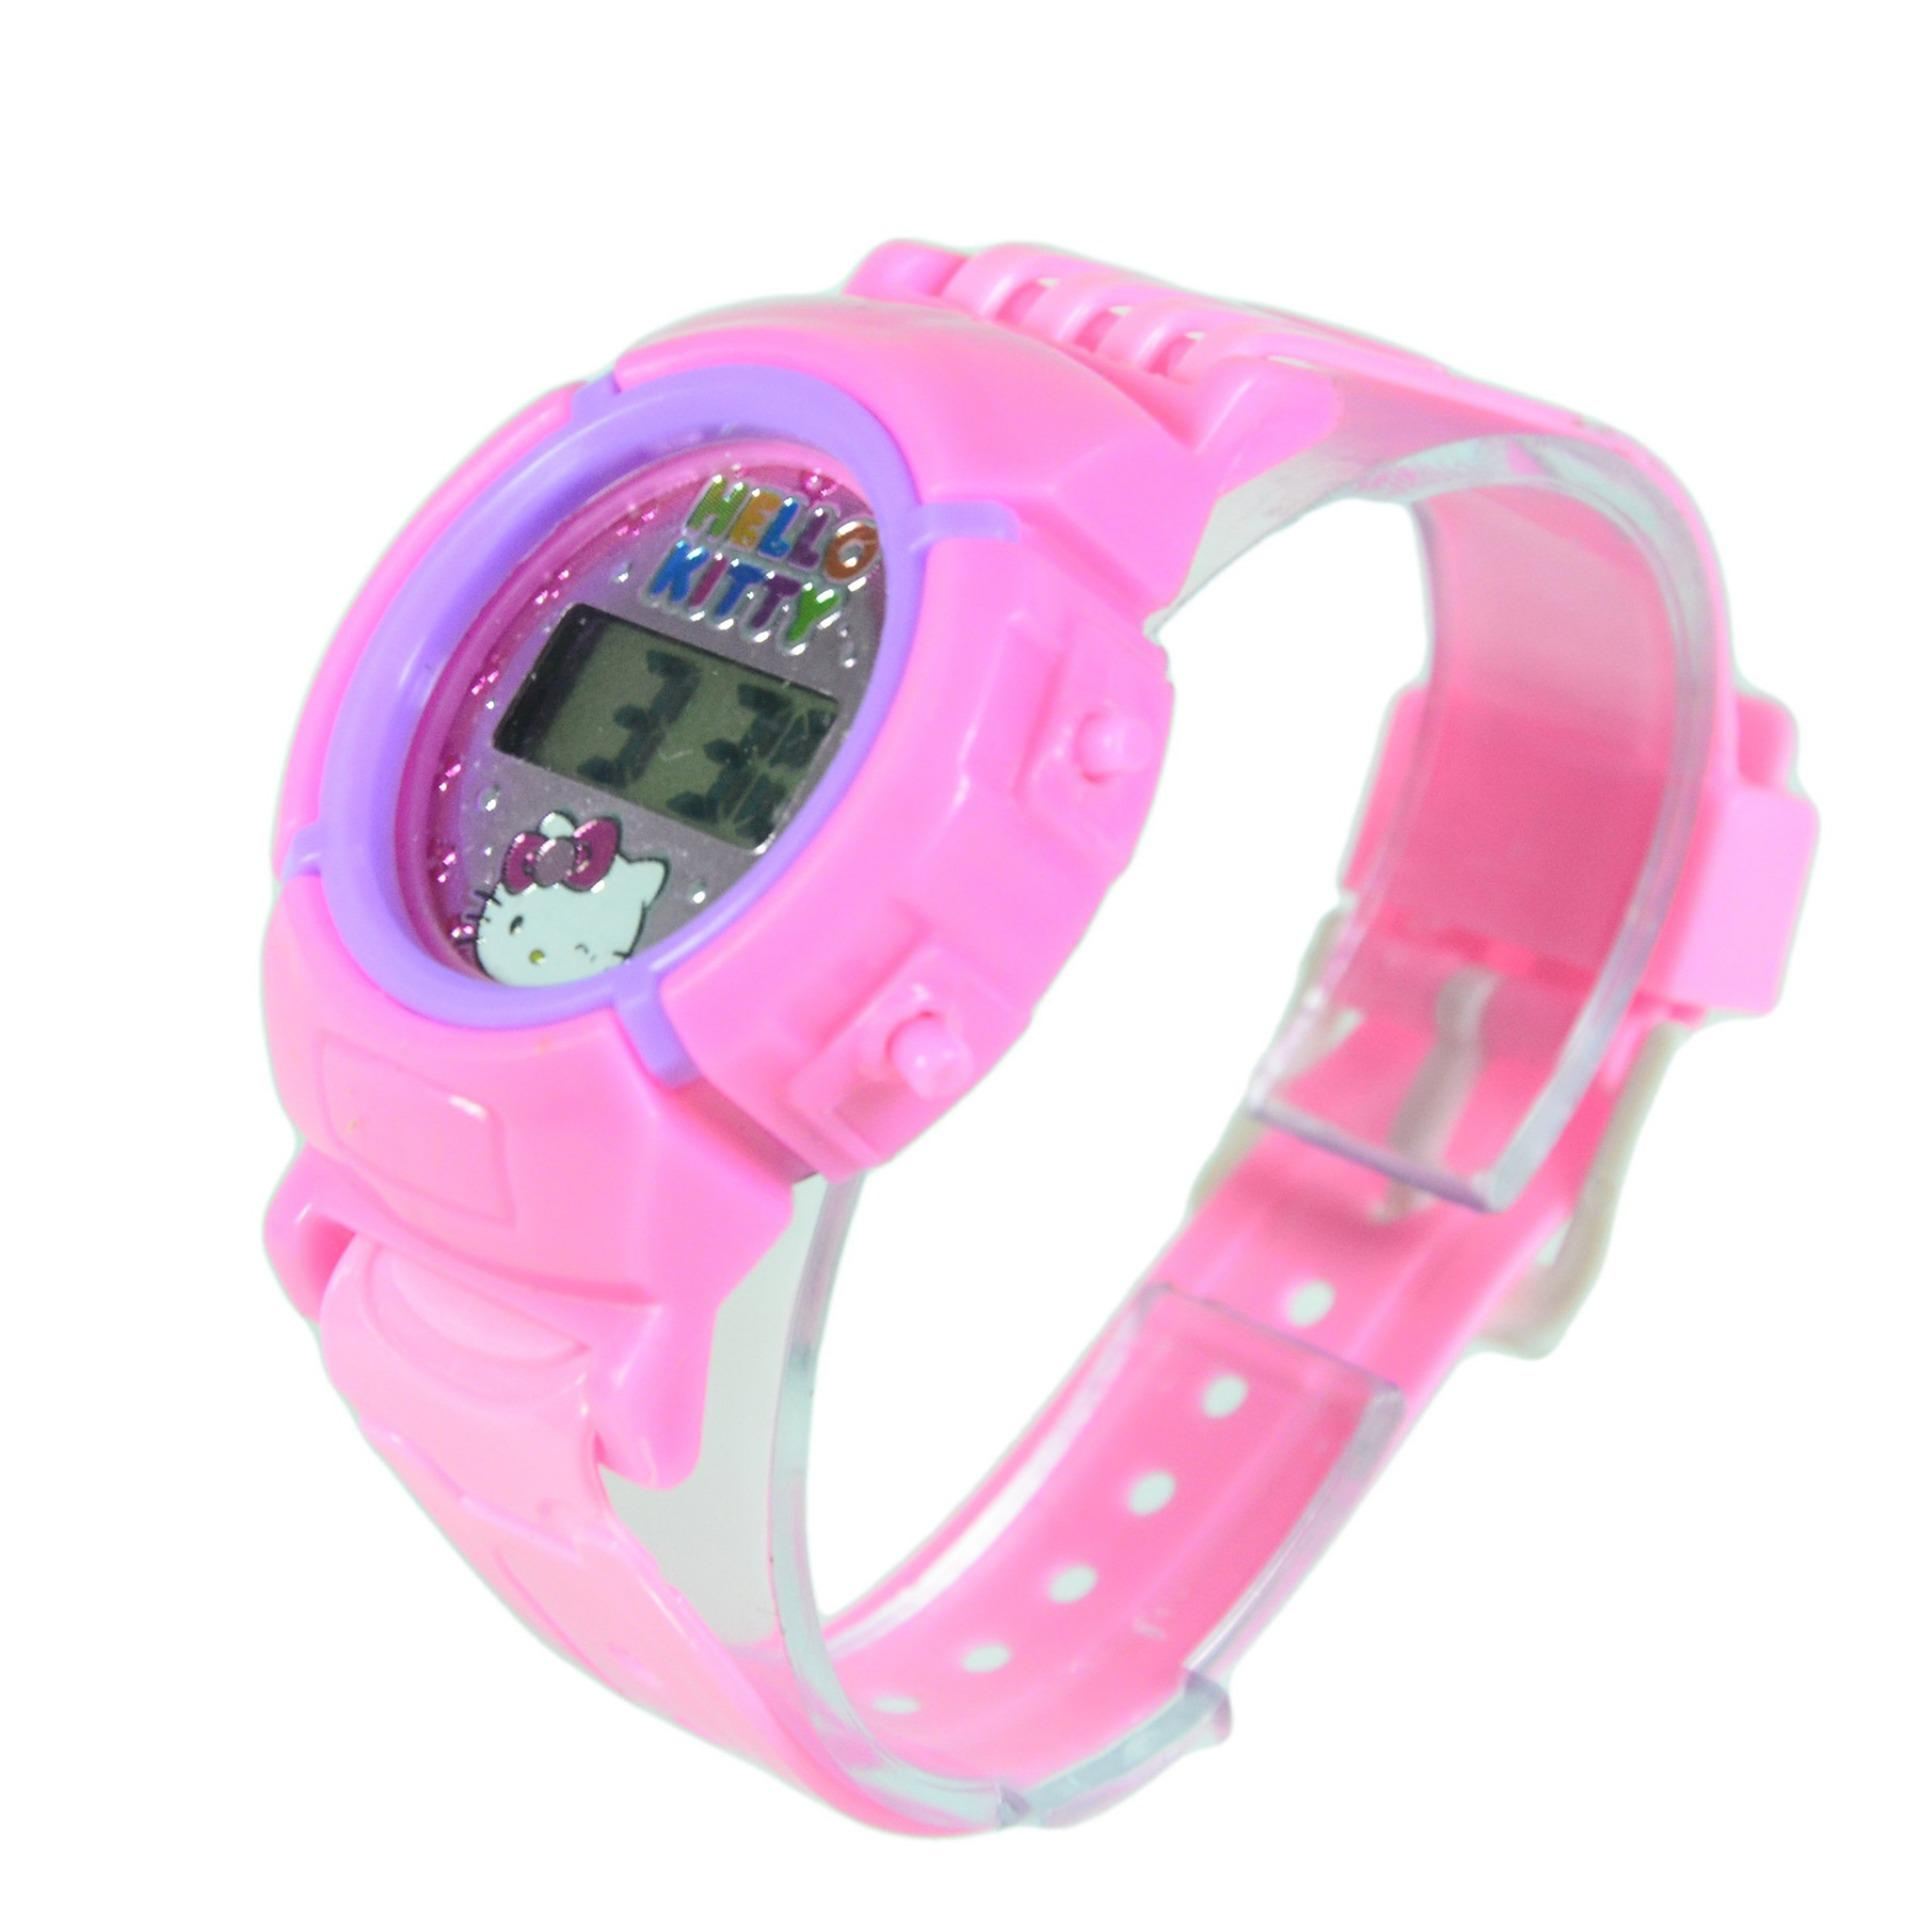 DNB Collection Jam Tangan Anak Sporty Oval Hello Kitty - Pink Muda